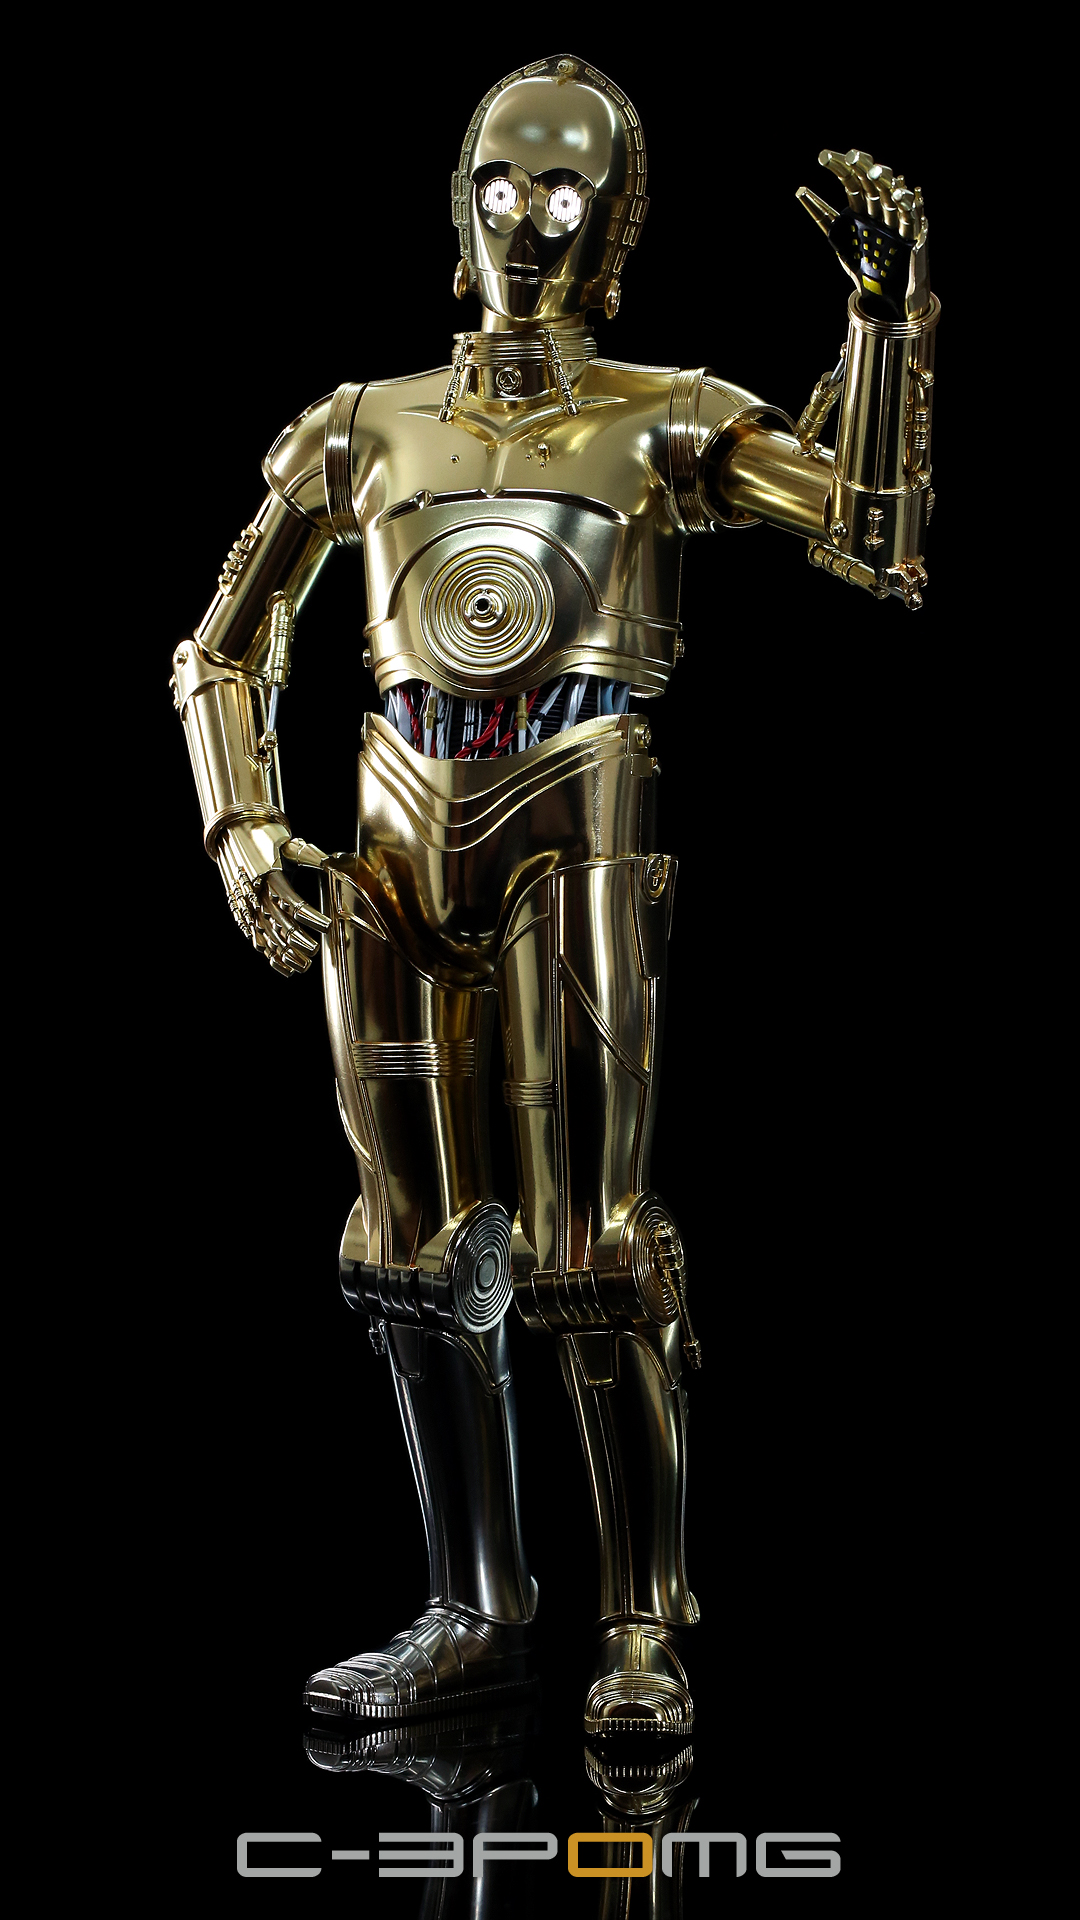 [Bandai] Star Wars: C-3PO - Perfect Model 1/6 scale - LANÇADO!!! - Página 2 C-3PO1033_zps5a2e8d94